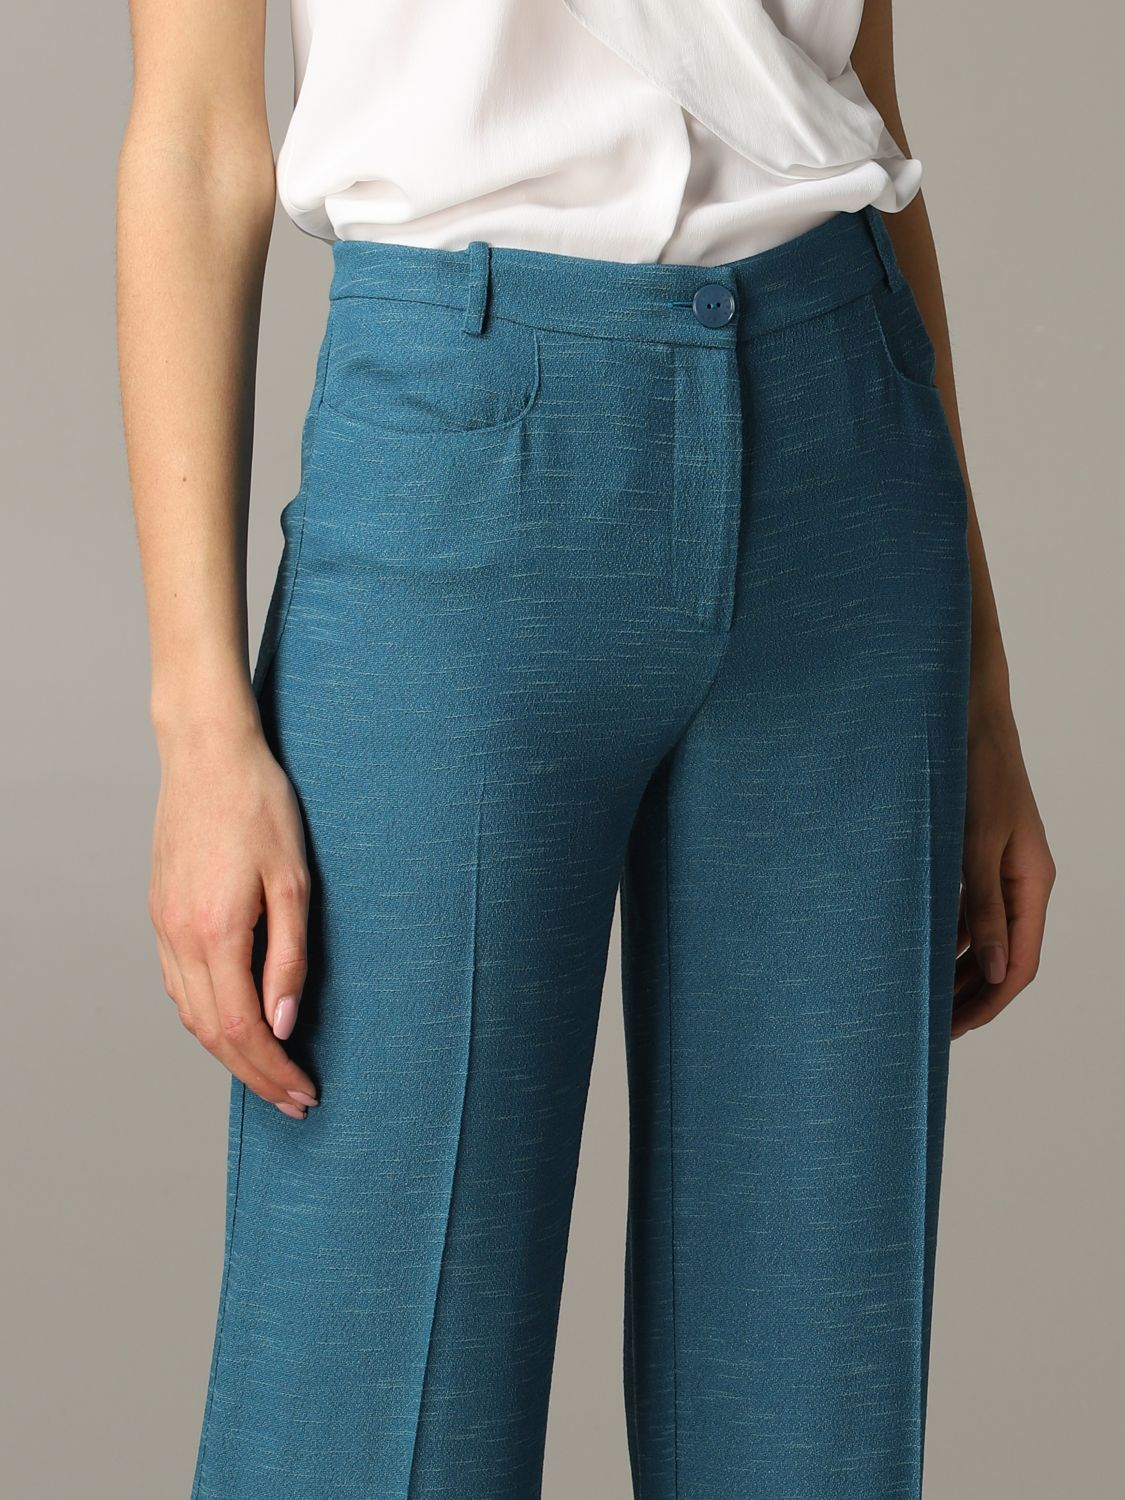 Patrizia Pepe wide trousers teal 5